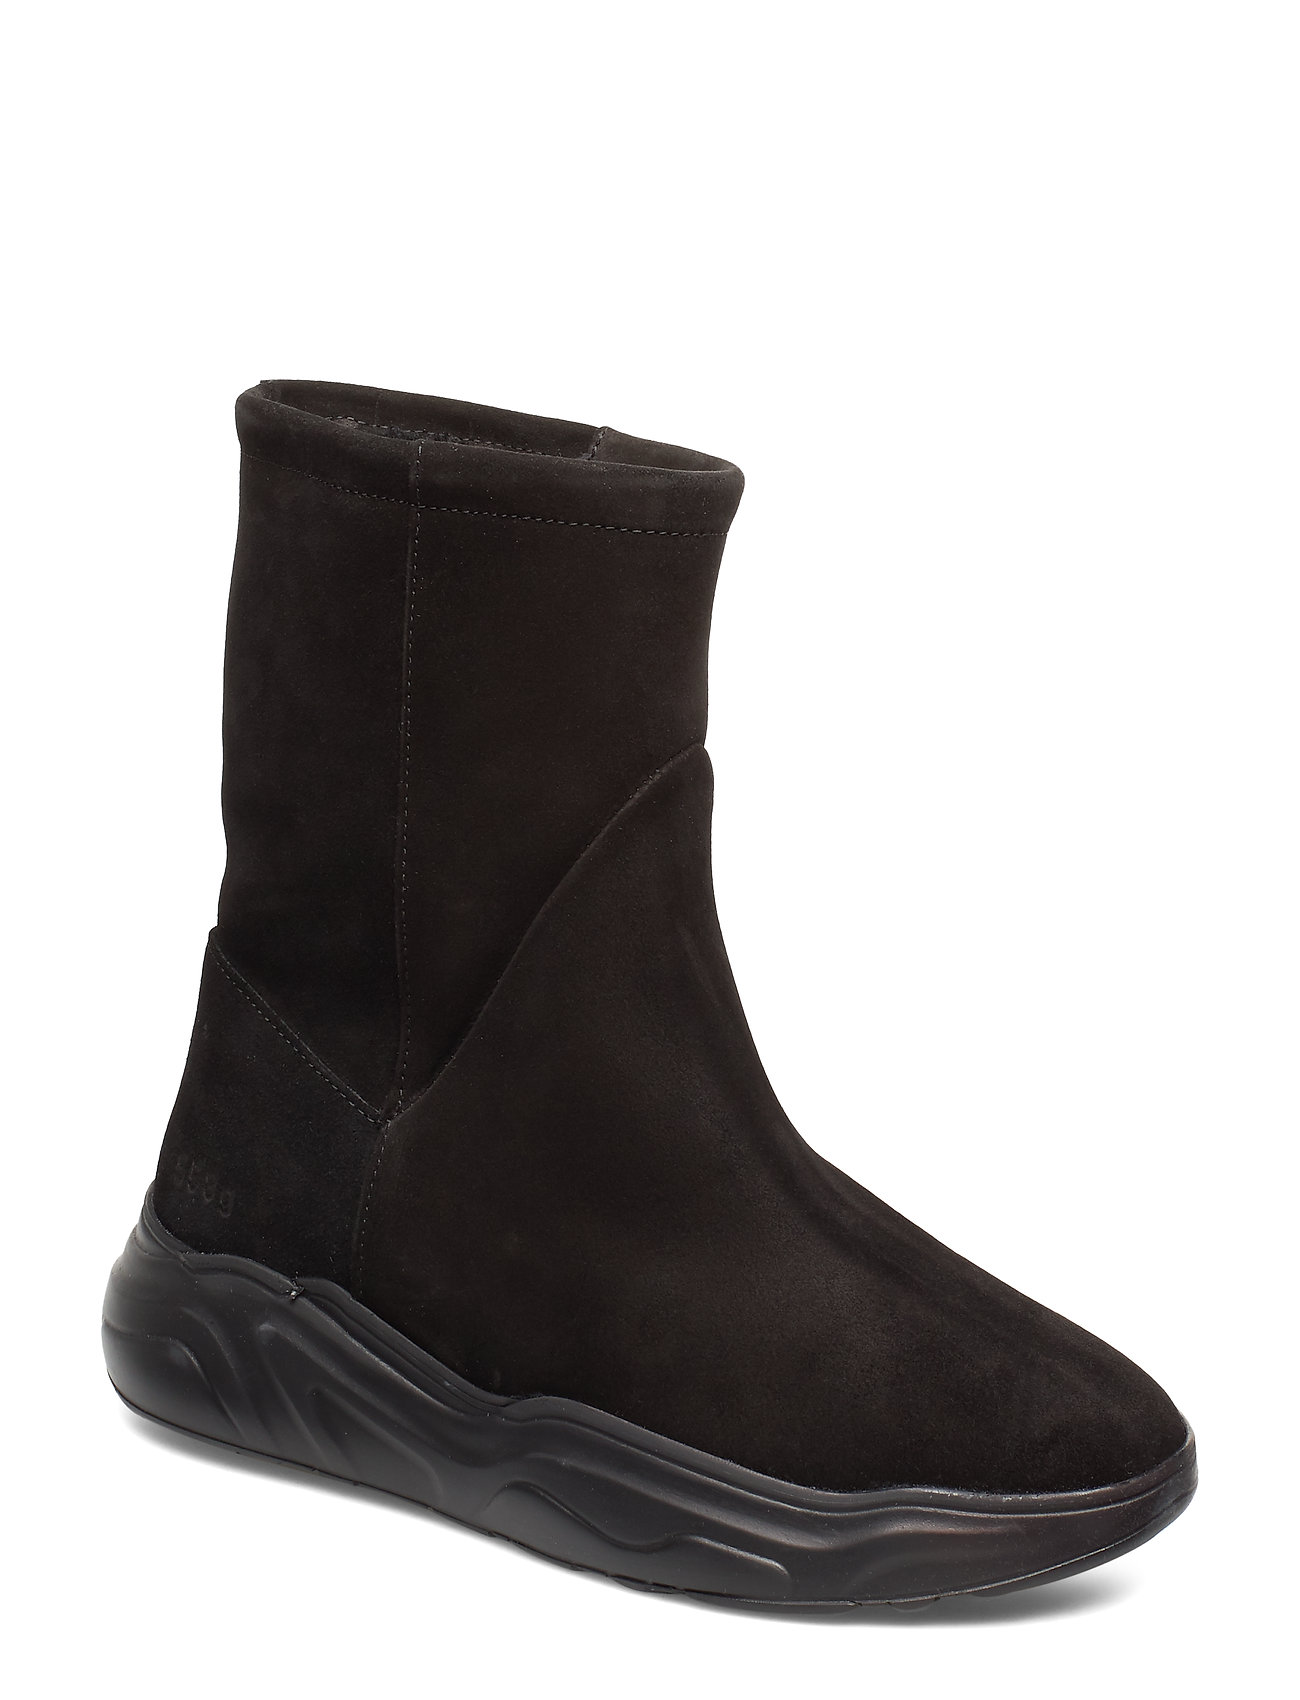 Image of 558g Boot Black Suede Shoes Boots Ankle Boots Ankle Boots Flat Heel Sort Gram (3229957159)